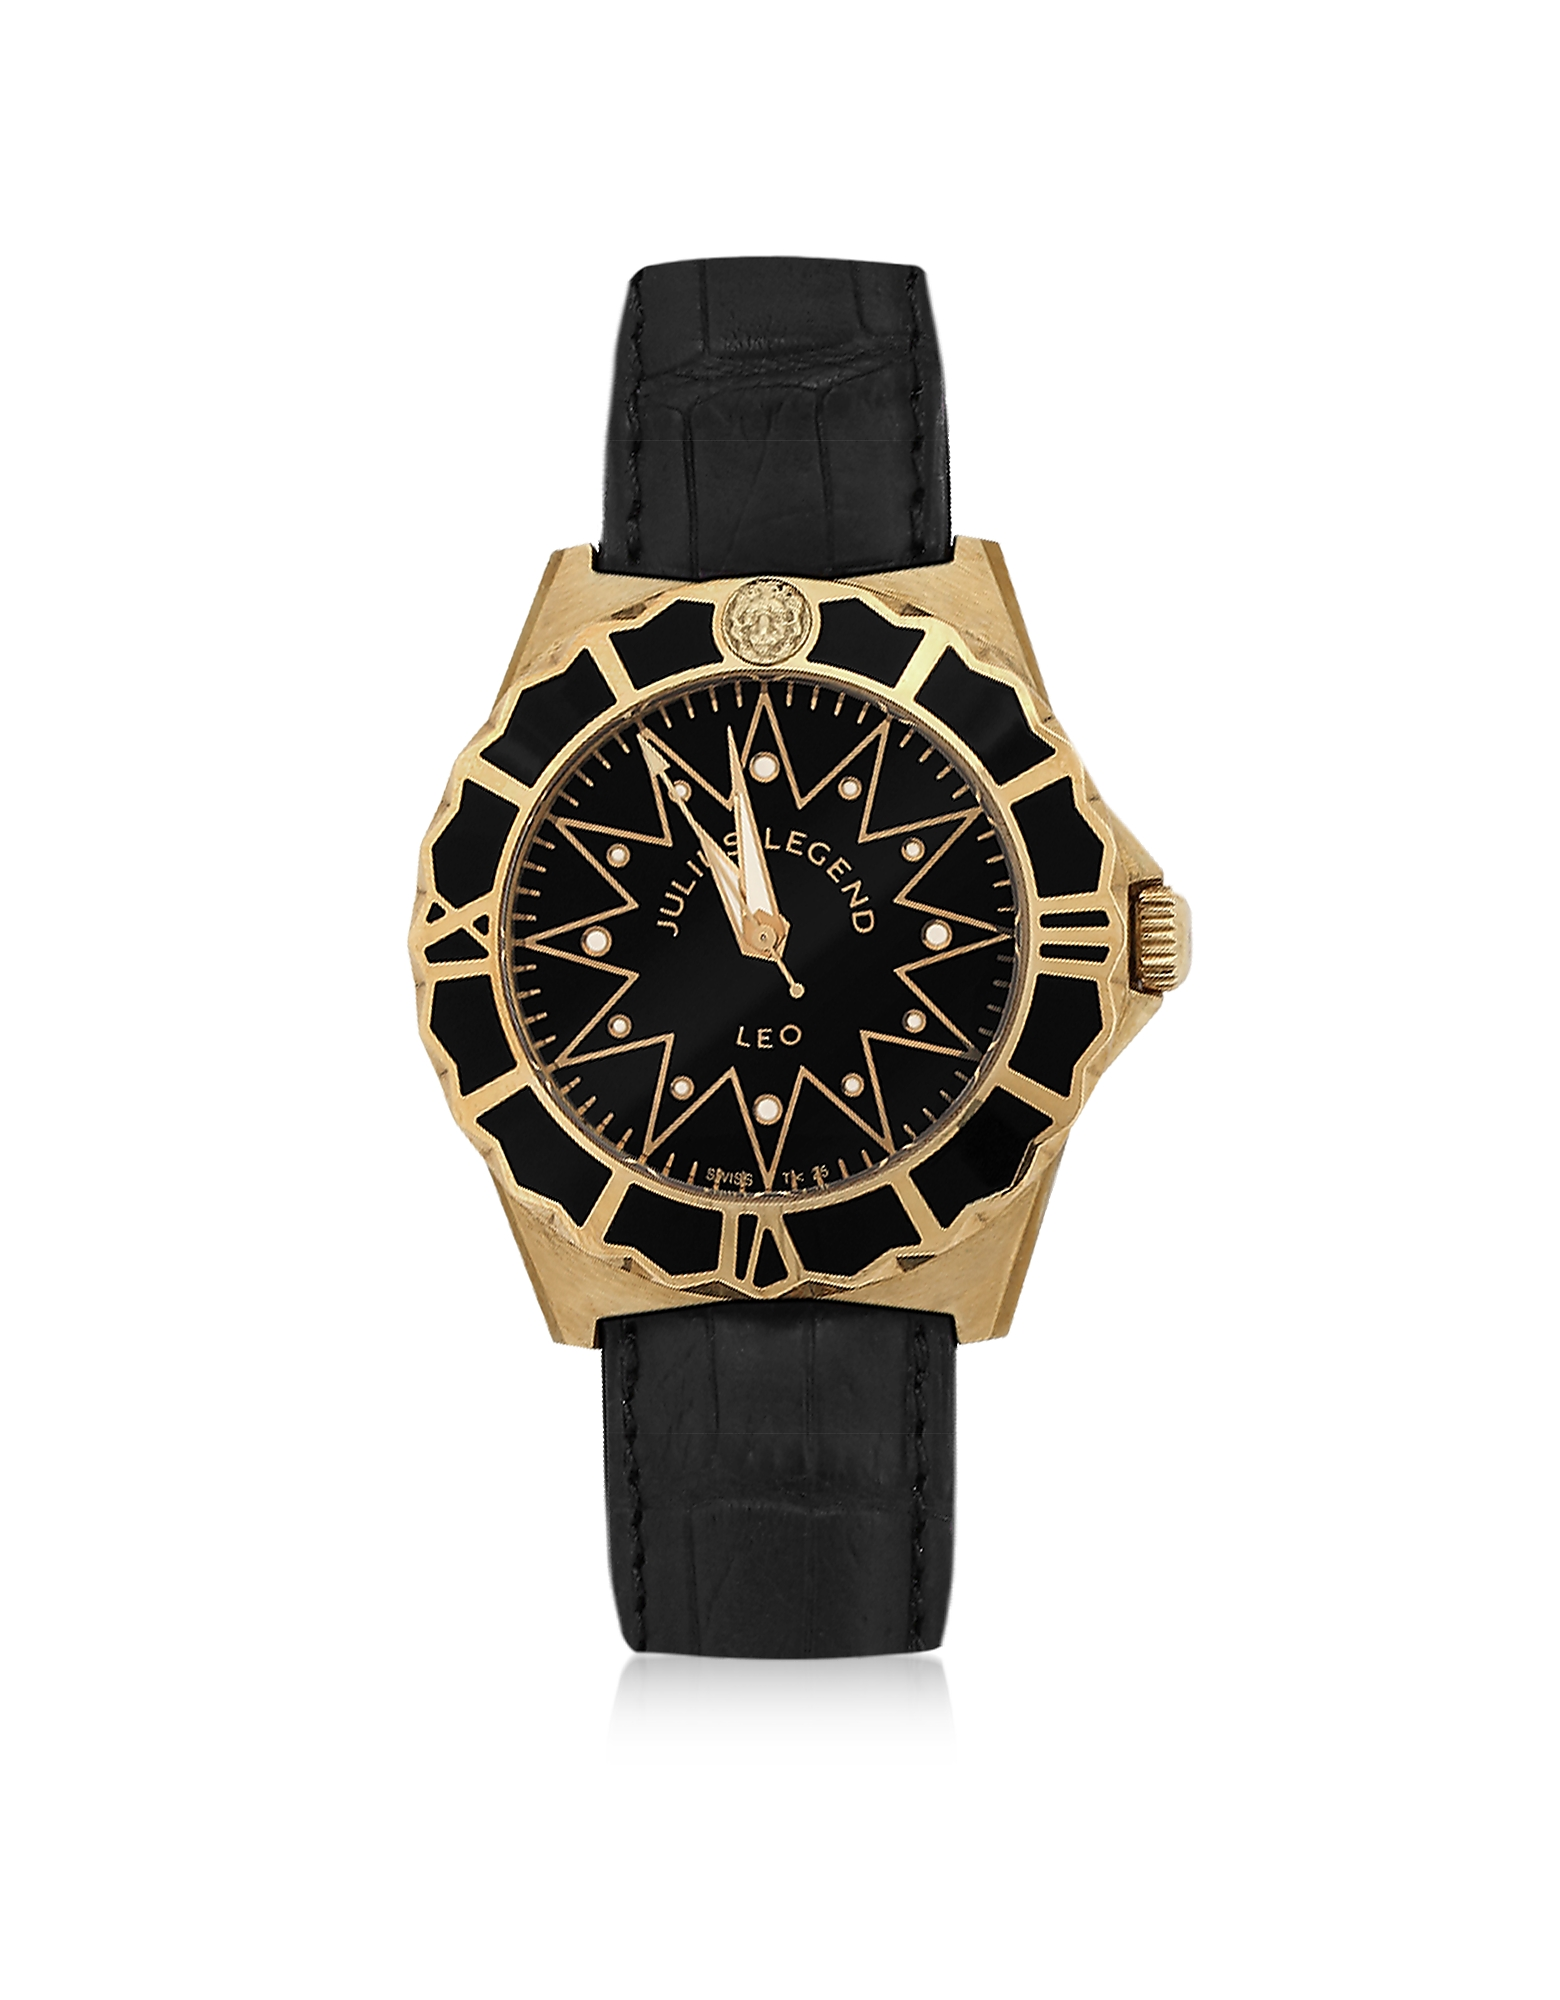 Julius Legend Men's Watches, Leo - 18K Gold and Crocodile Leather Automatic Watch